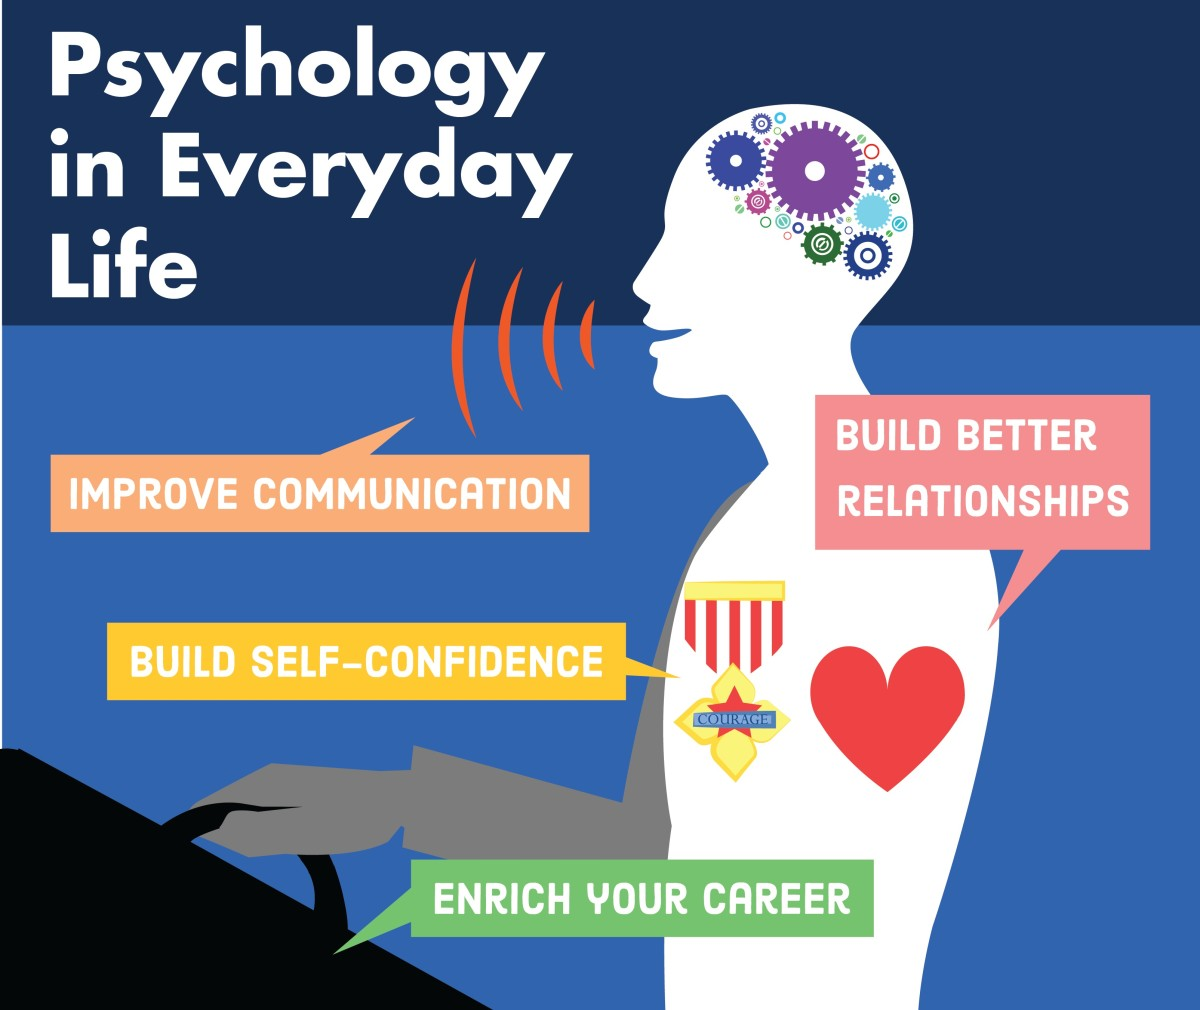 Learn everything about psychology